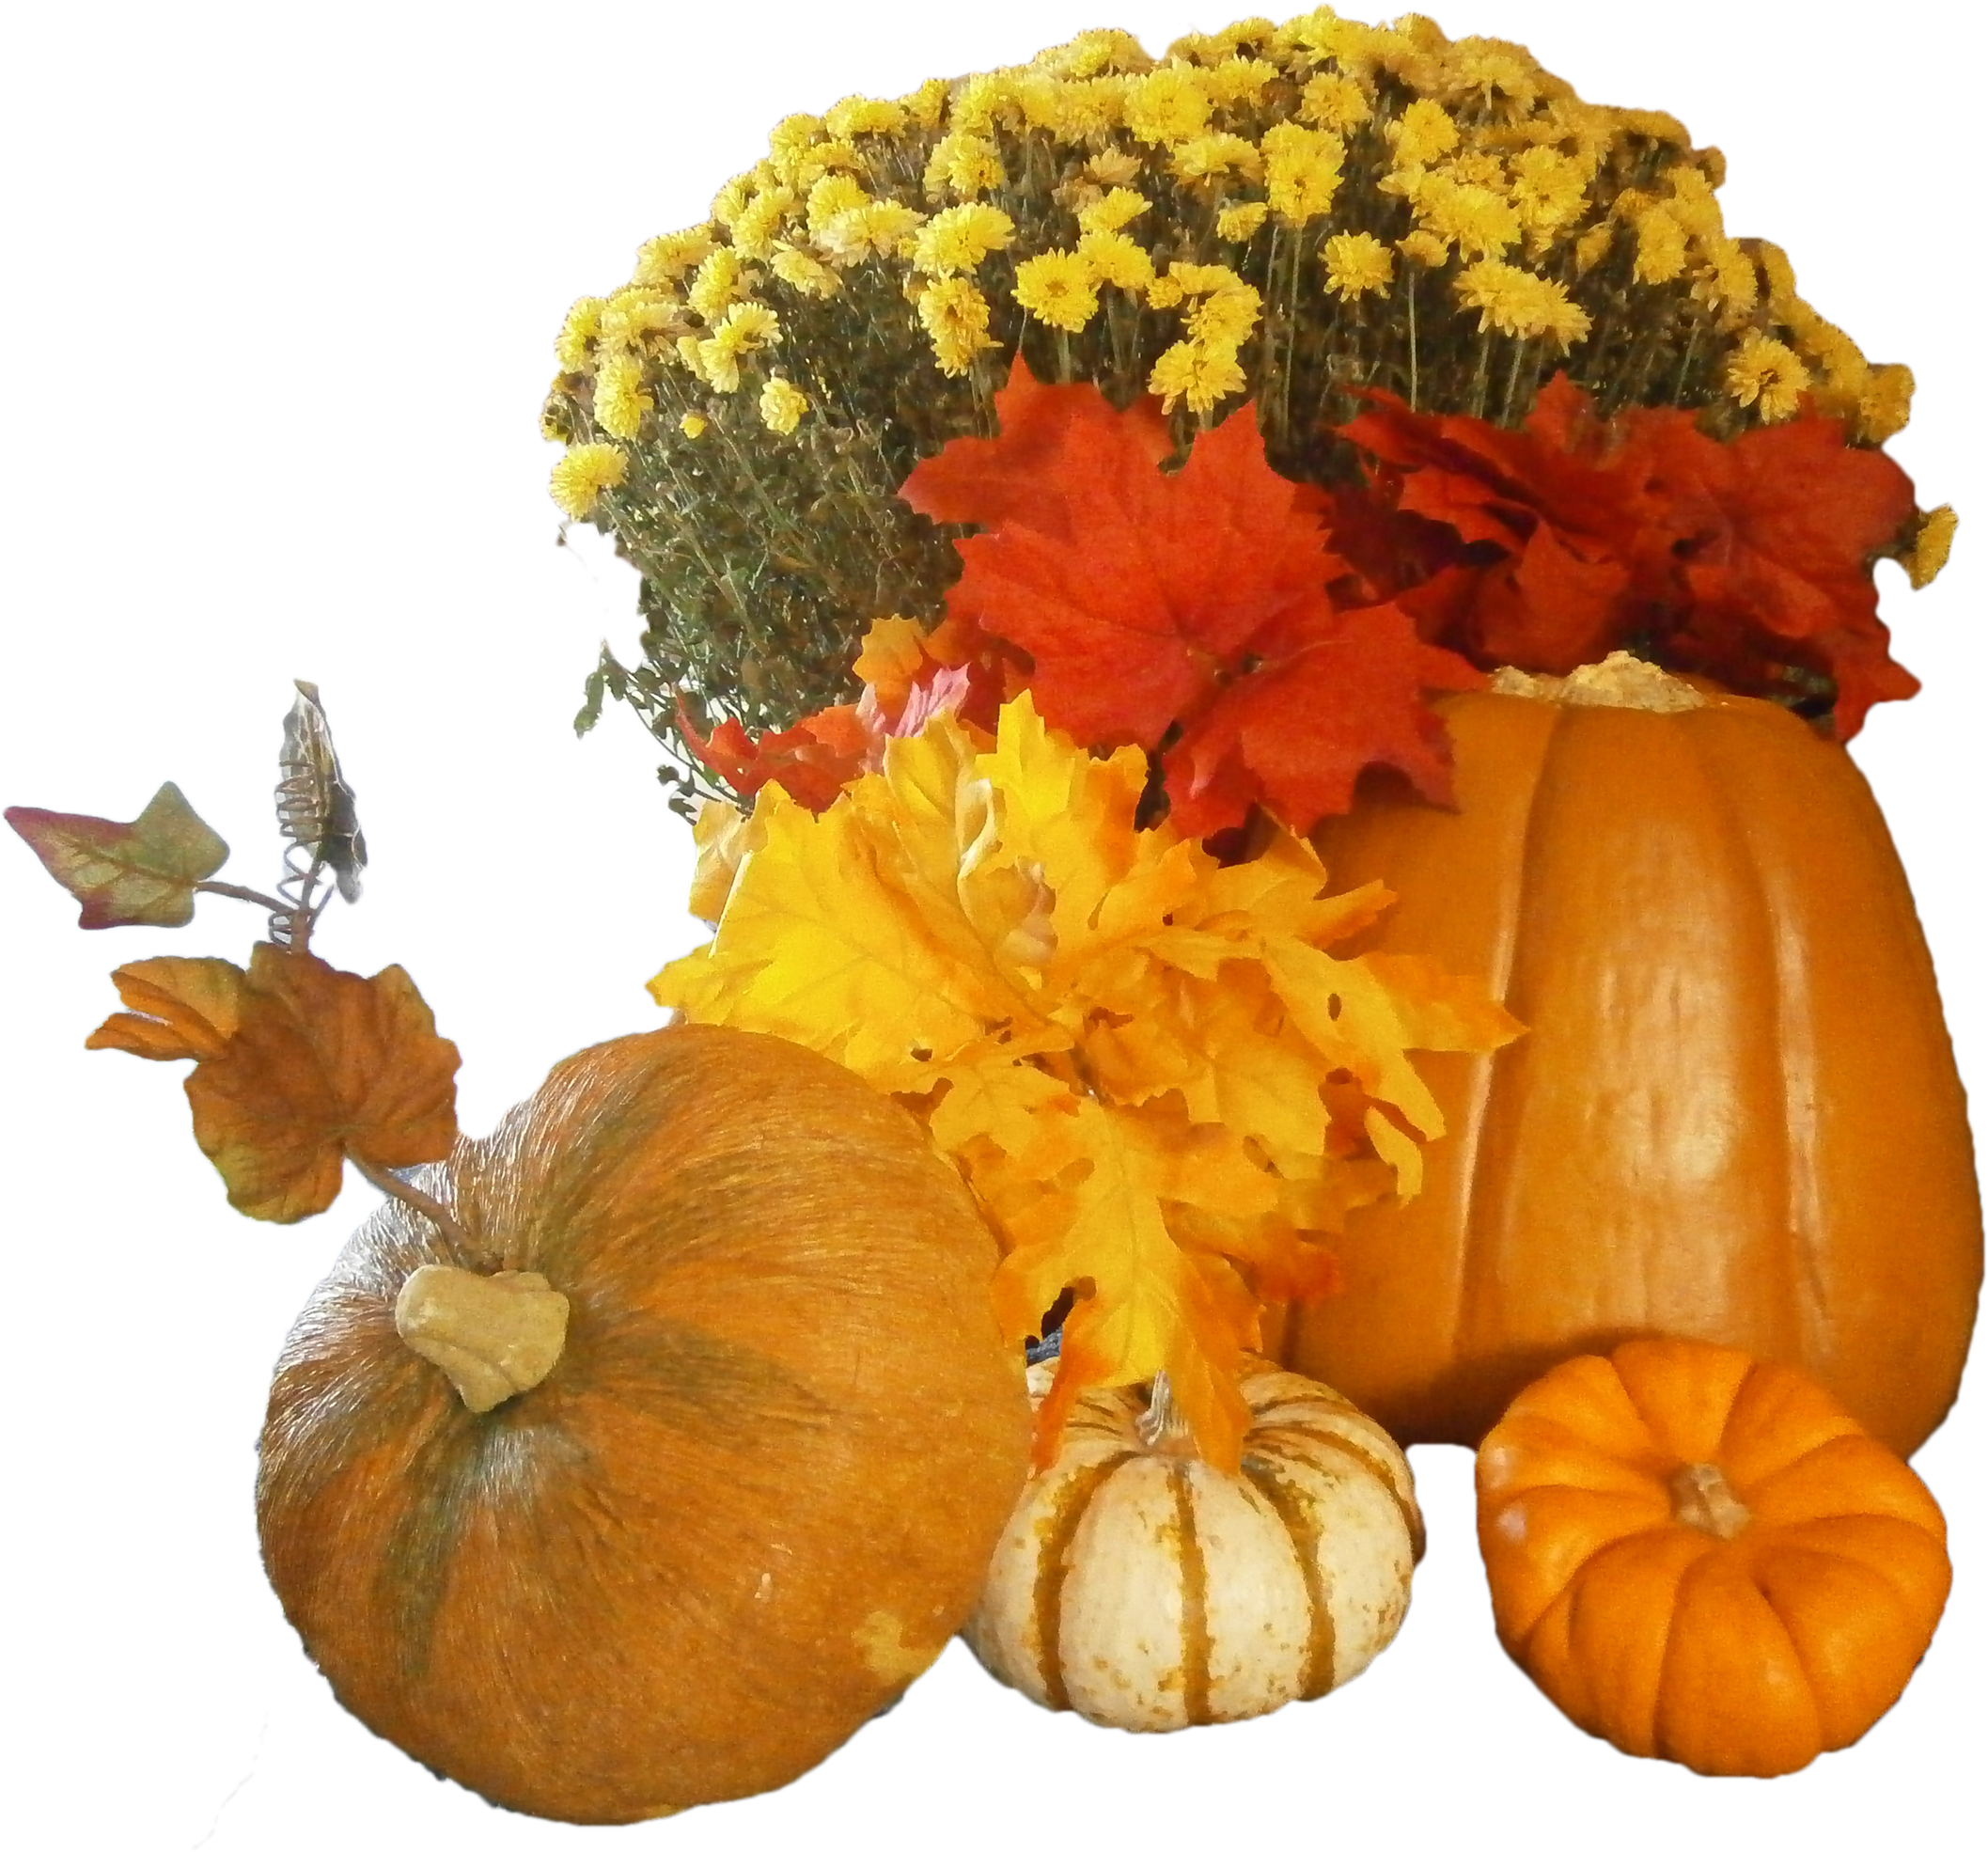 Free clipart thanksgiving day image royalty free library Free Thanksgiving Day PNG Images image royalty free library